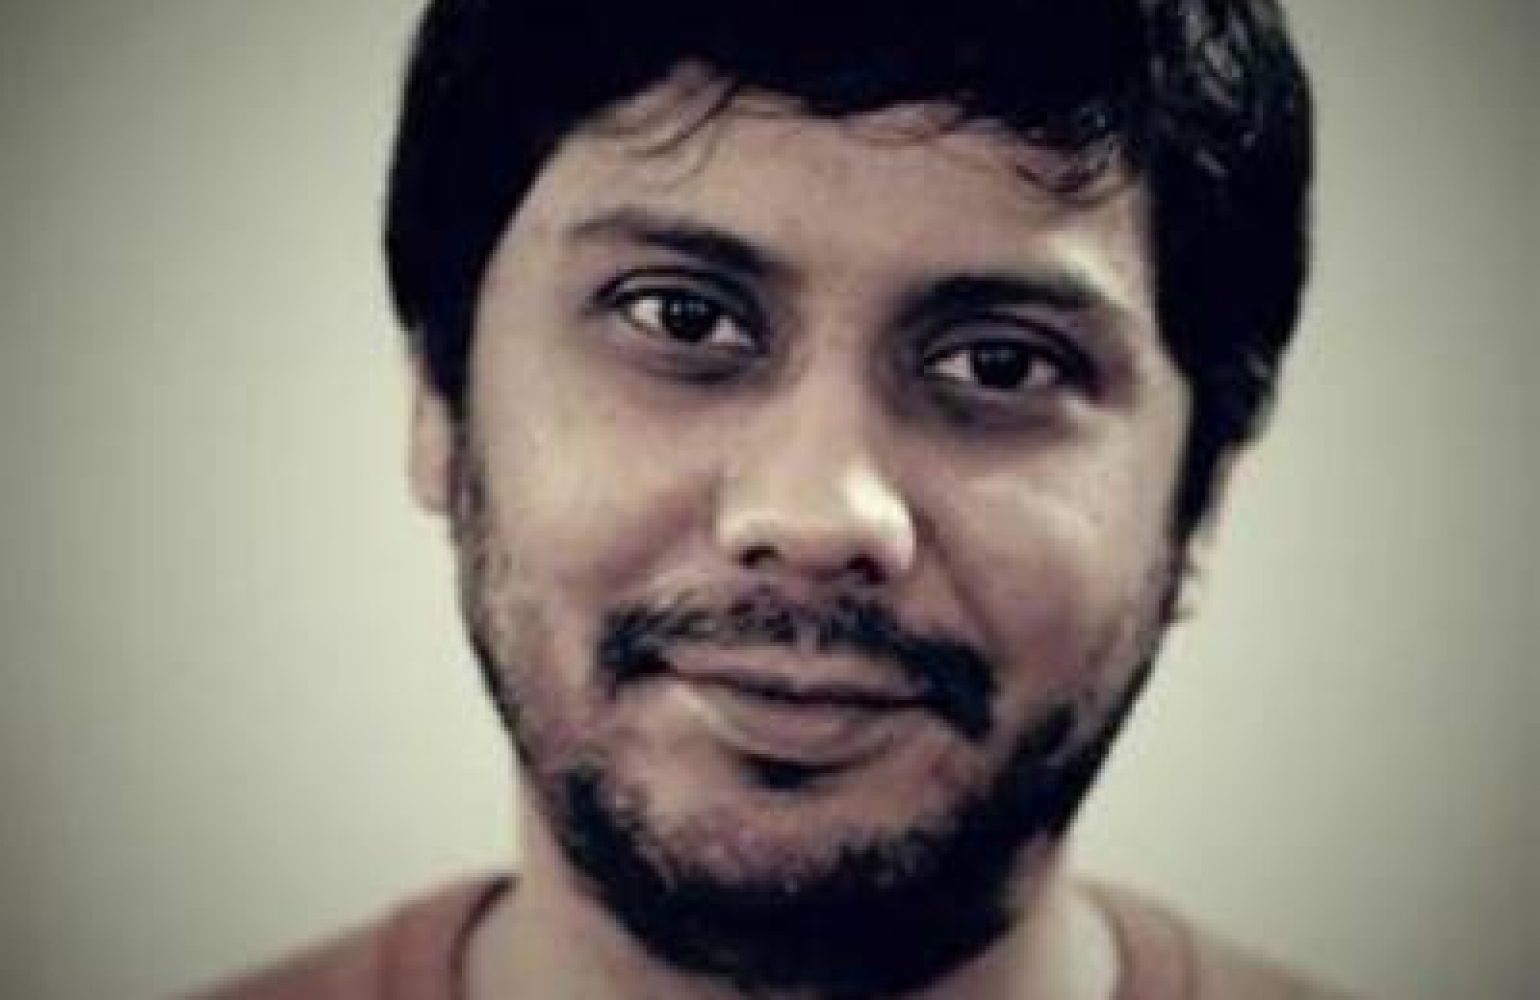 Journalism is not a crime: Non-bailable arrest warrant for journalist Cyril Almeida raises concerns for free press